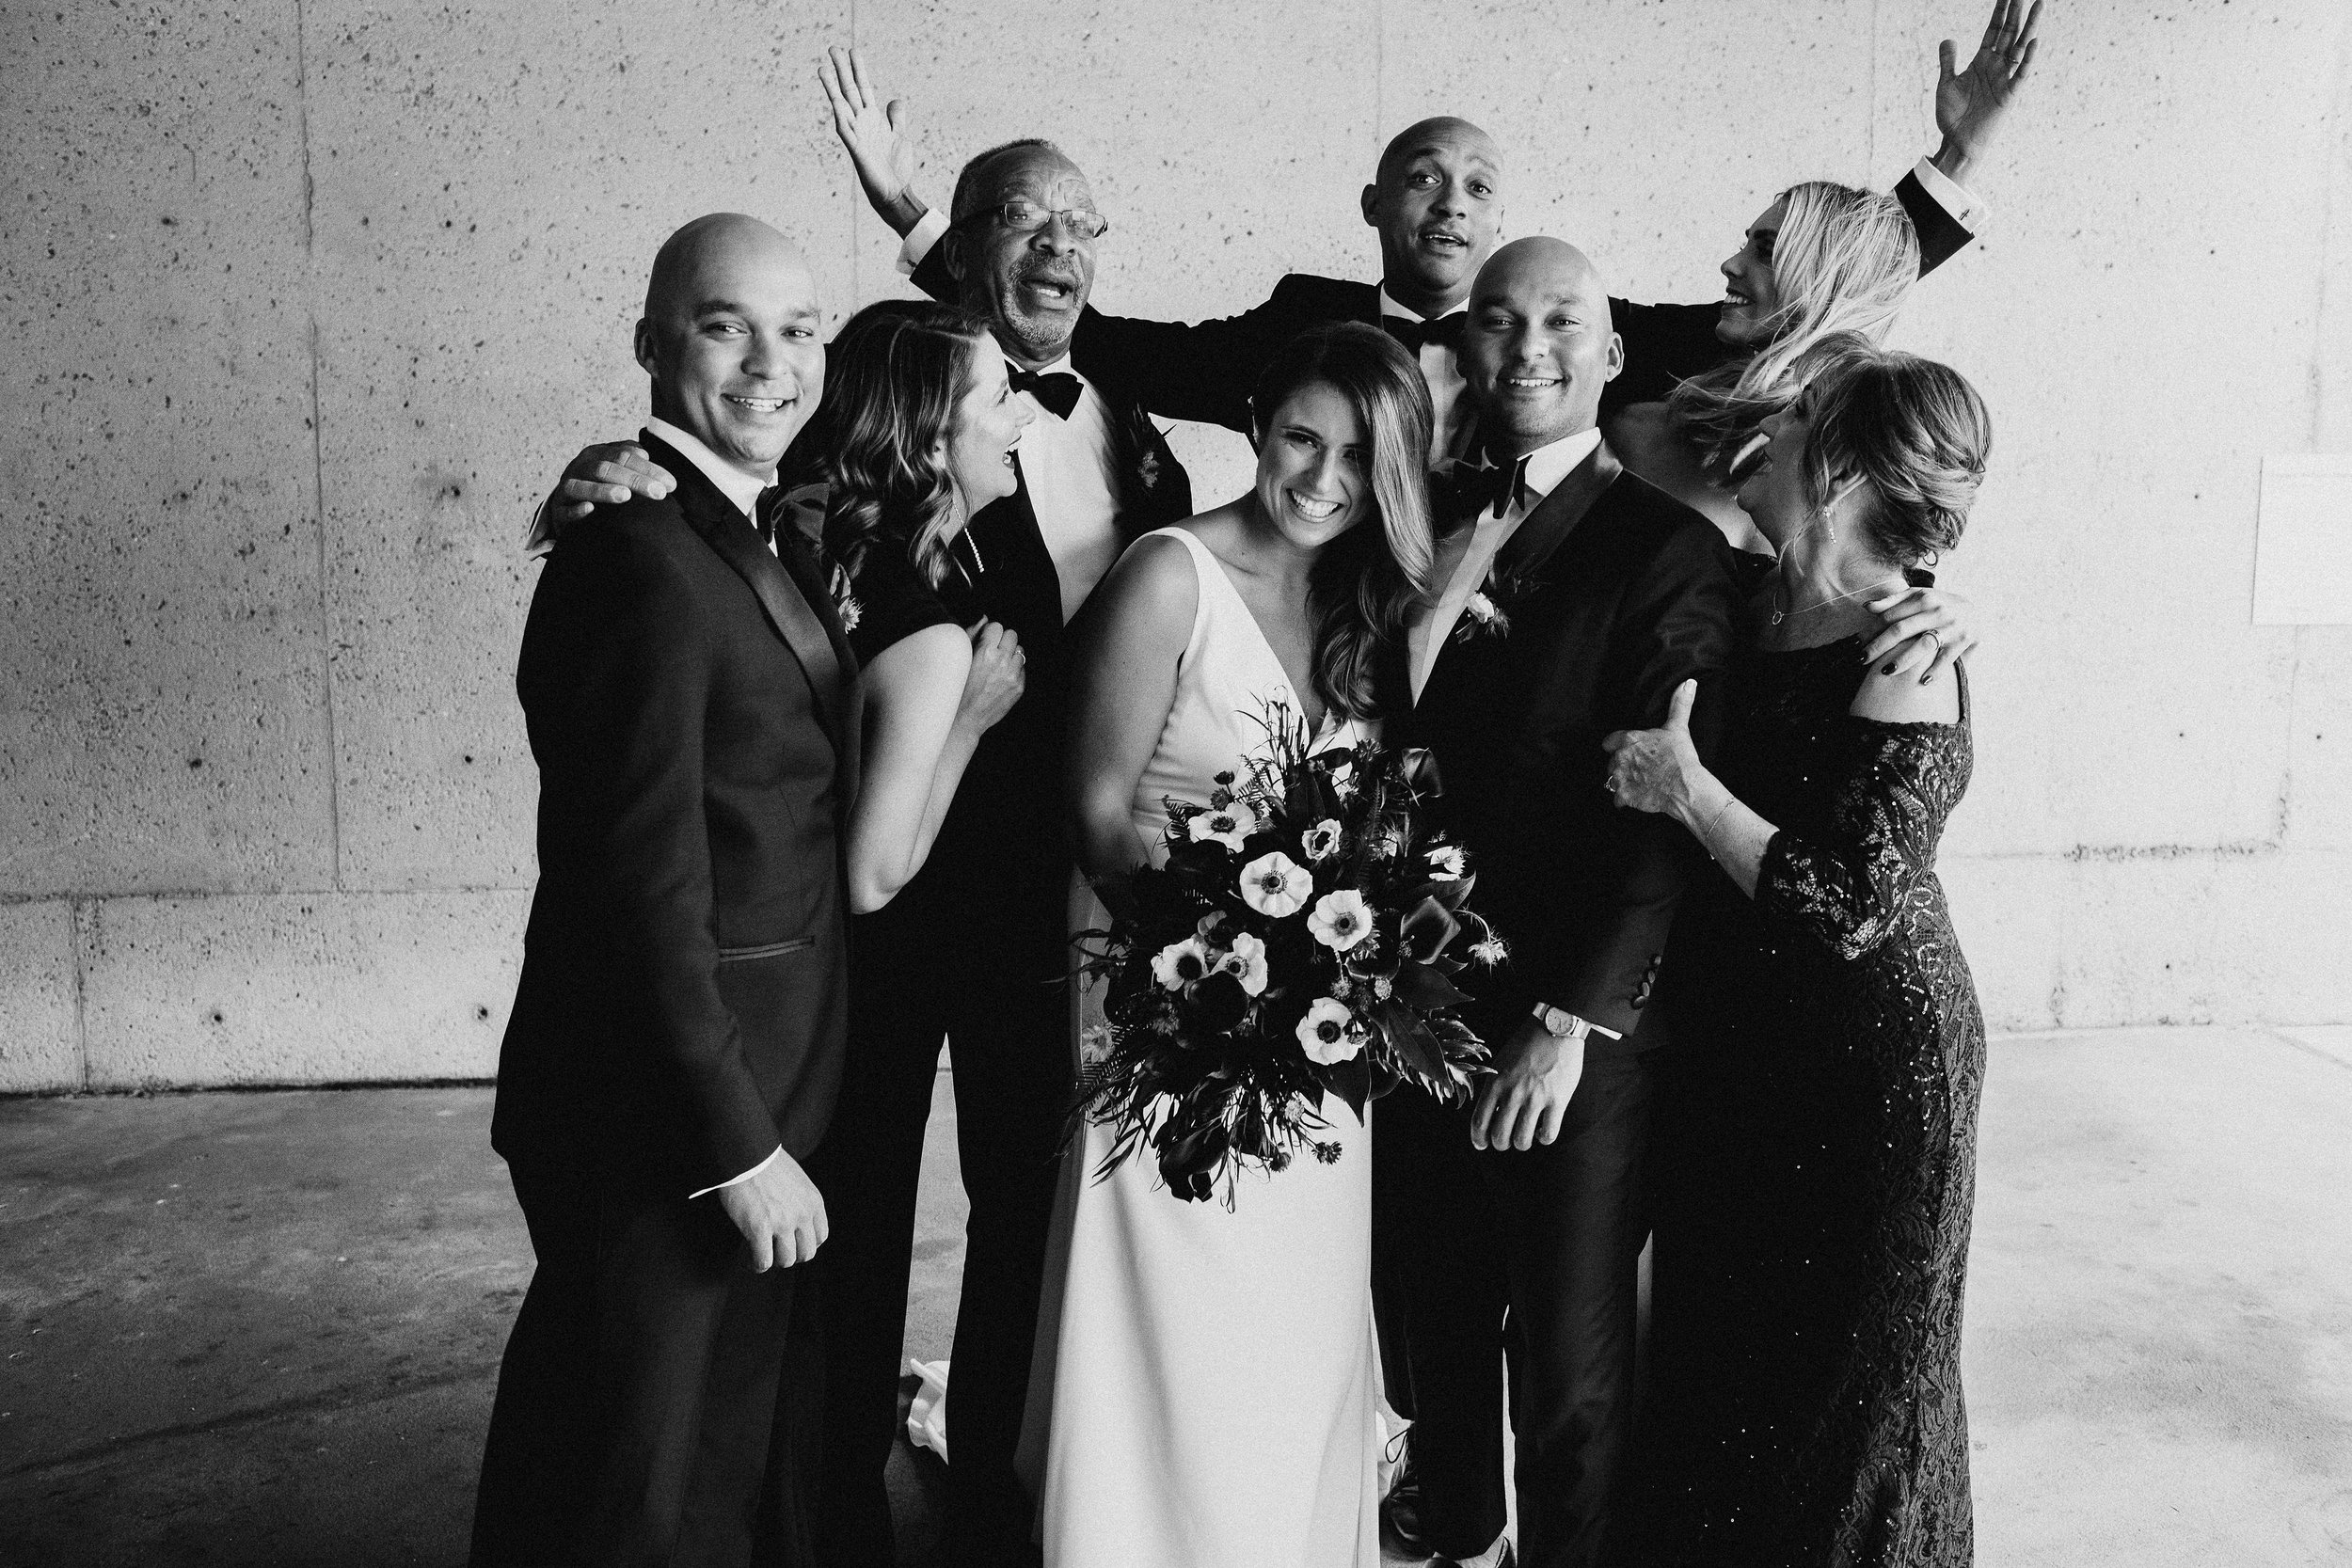 Family Photo Wedding Day Lauren and Ryan Oakland Museum of California Katie Laines design and Coordination